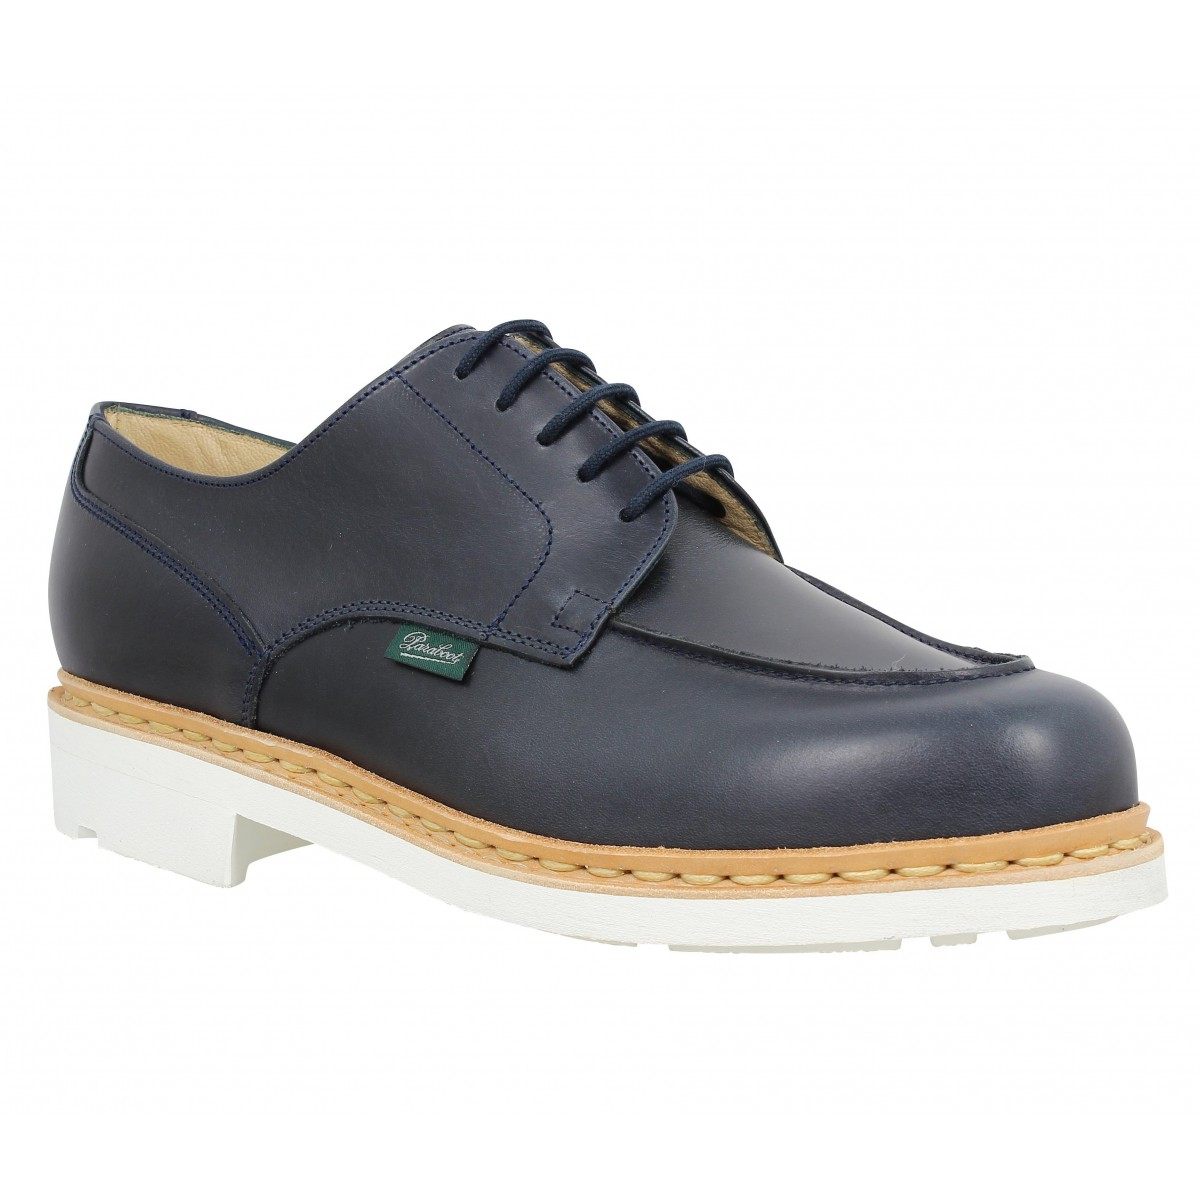 Chaussures à lacets PARABOOT Chambord cuir Homme Marine